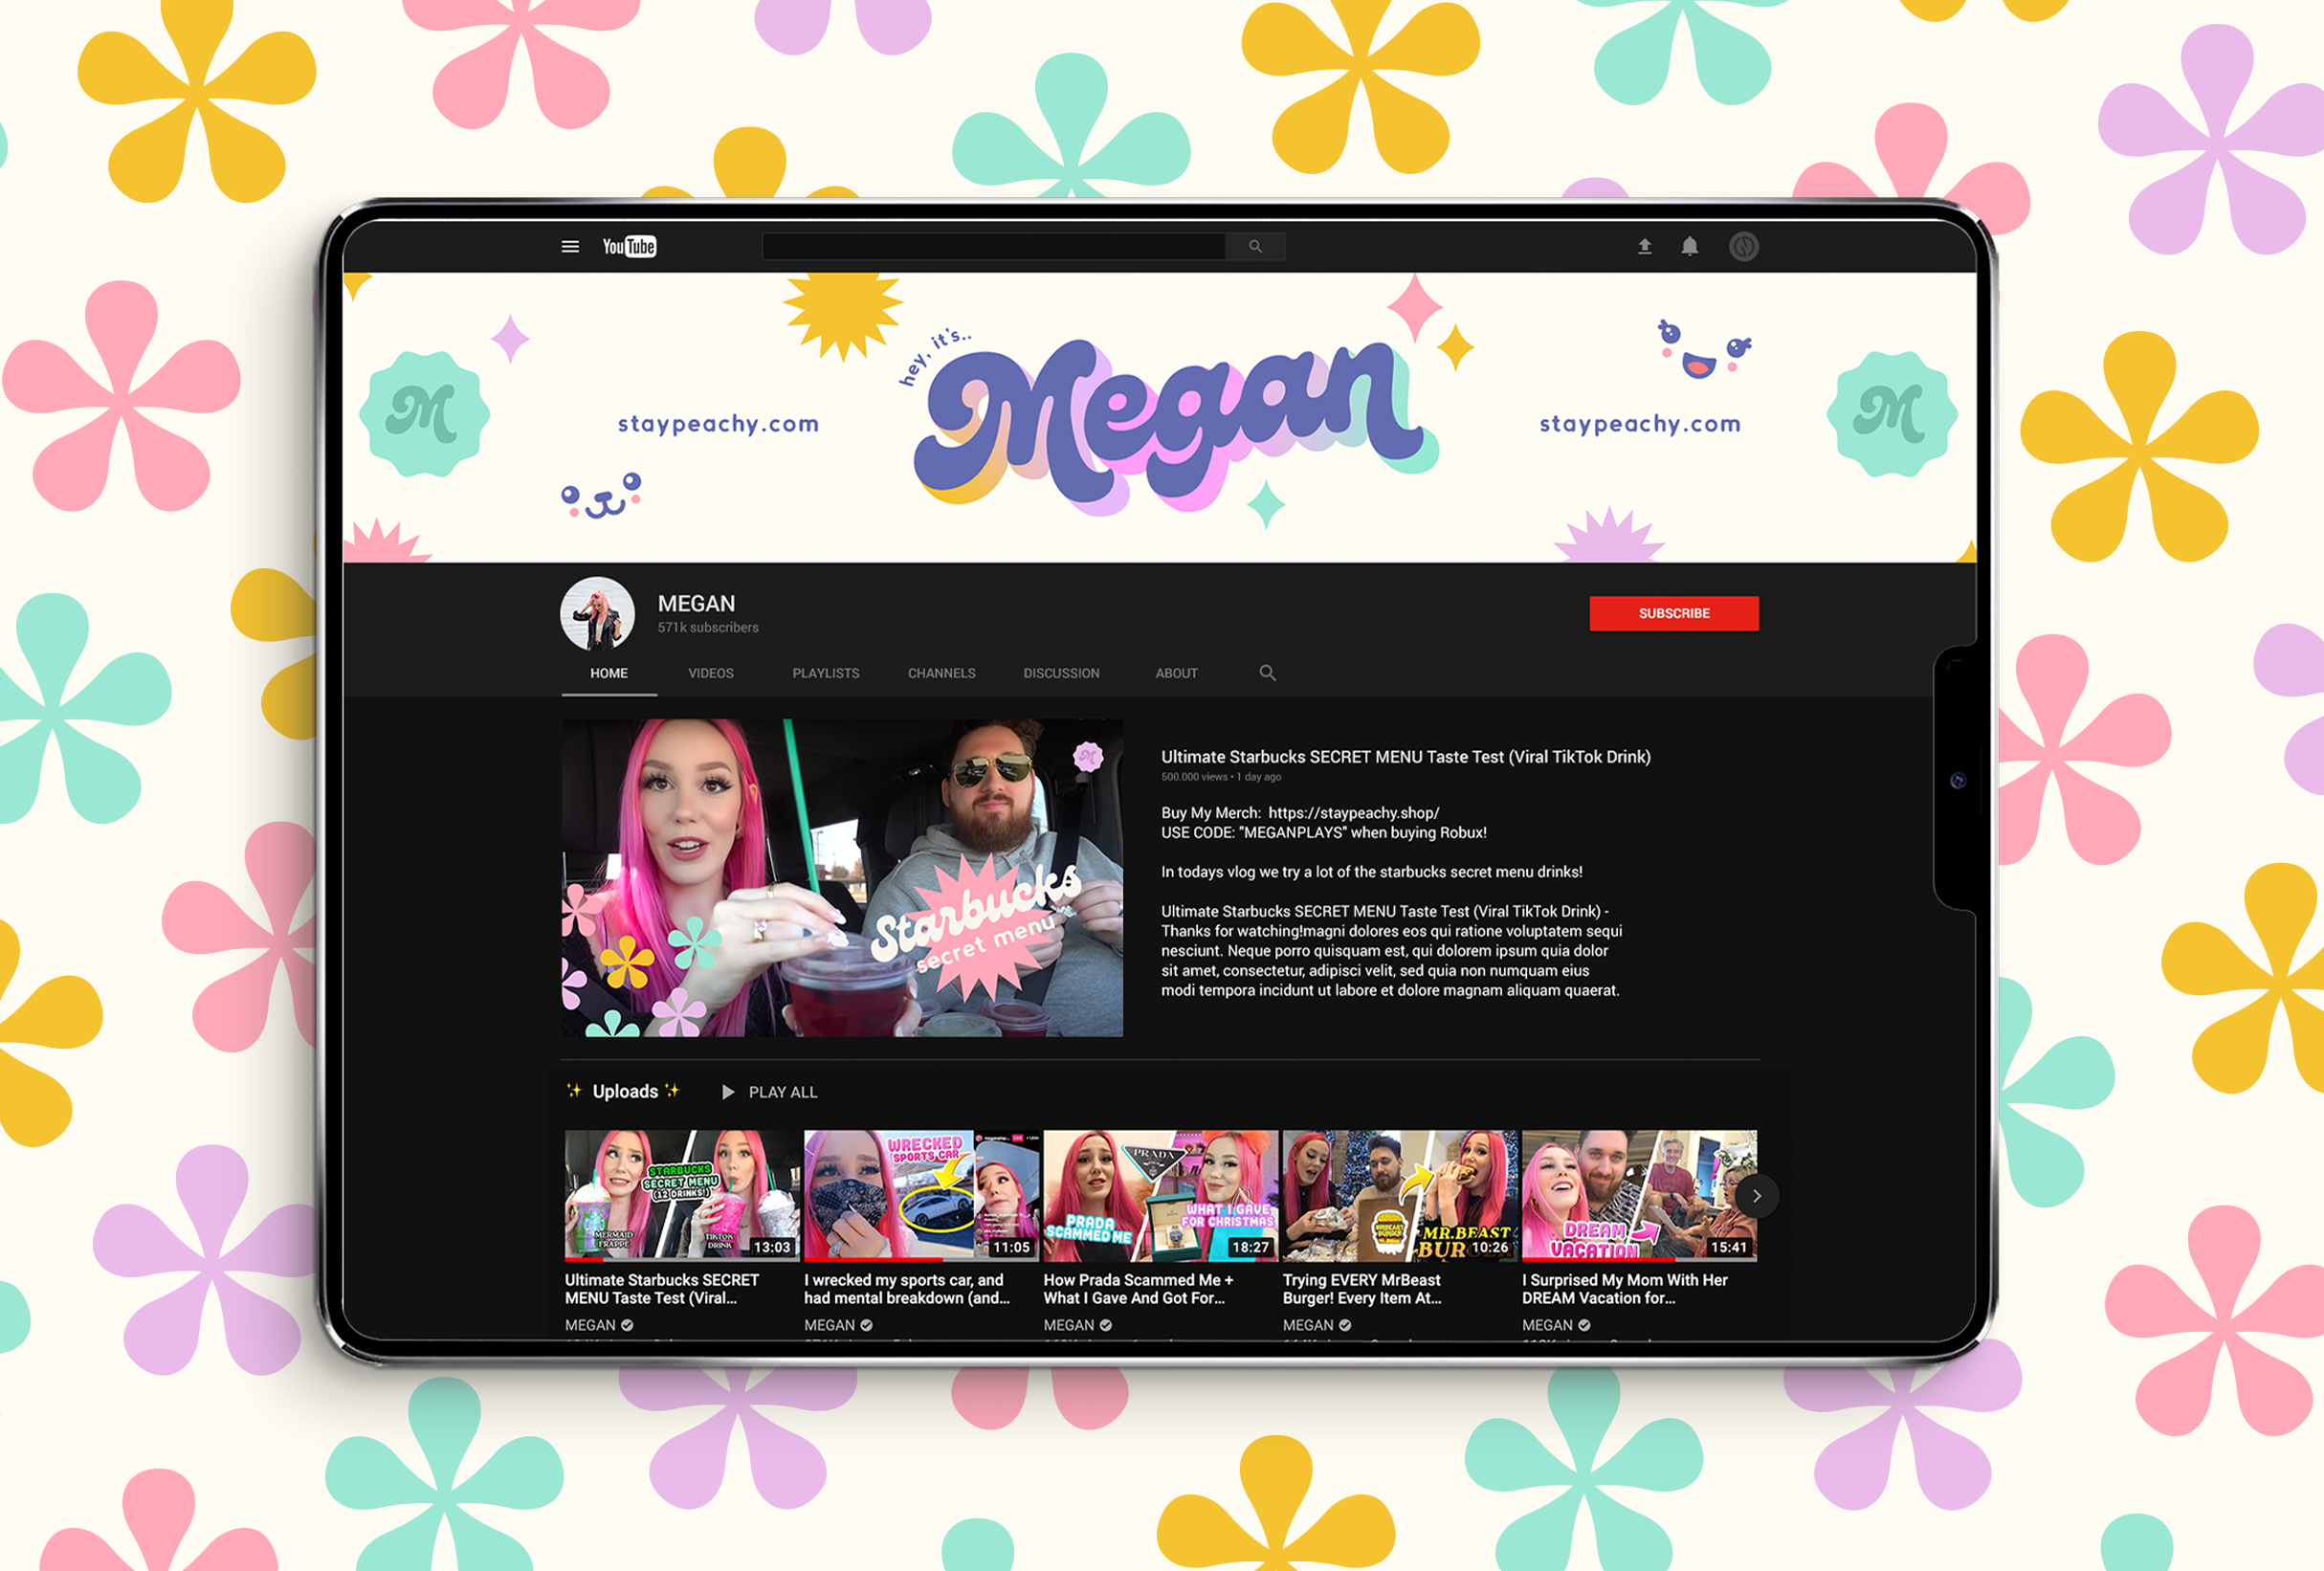 Youtube for MeganPlays, a successful gaming & lifestyle youtuber - designed by Wiltshire-based graphic designer, Kaye Huett